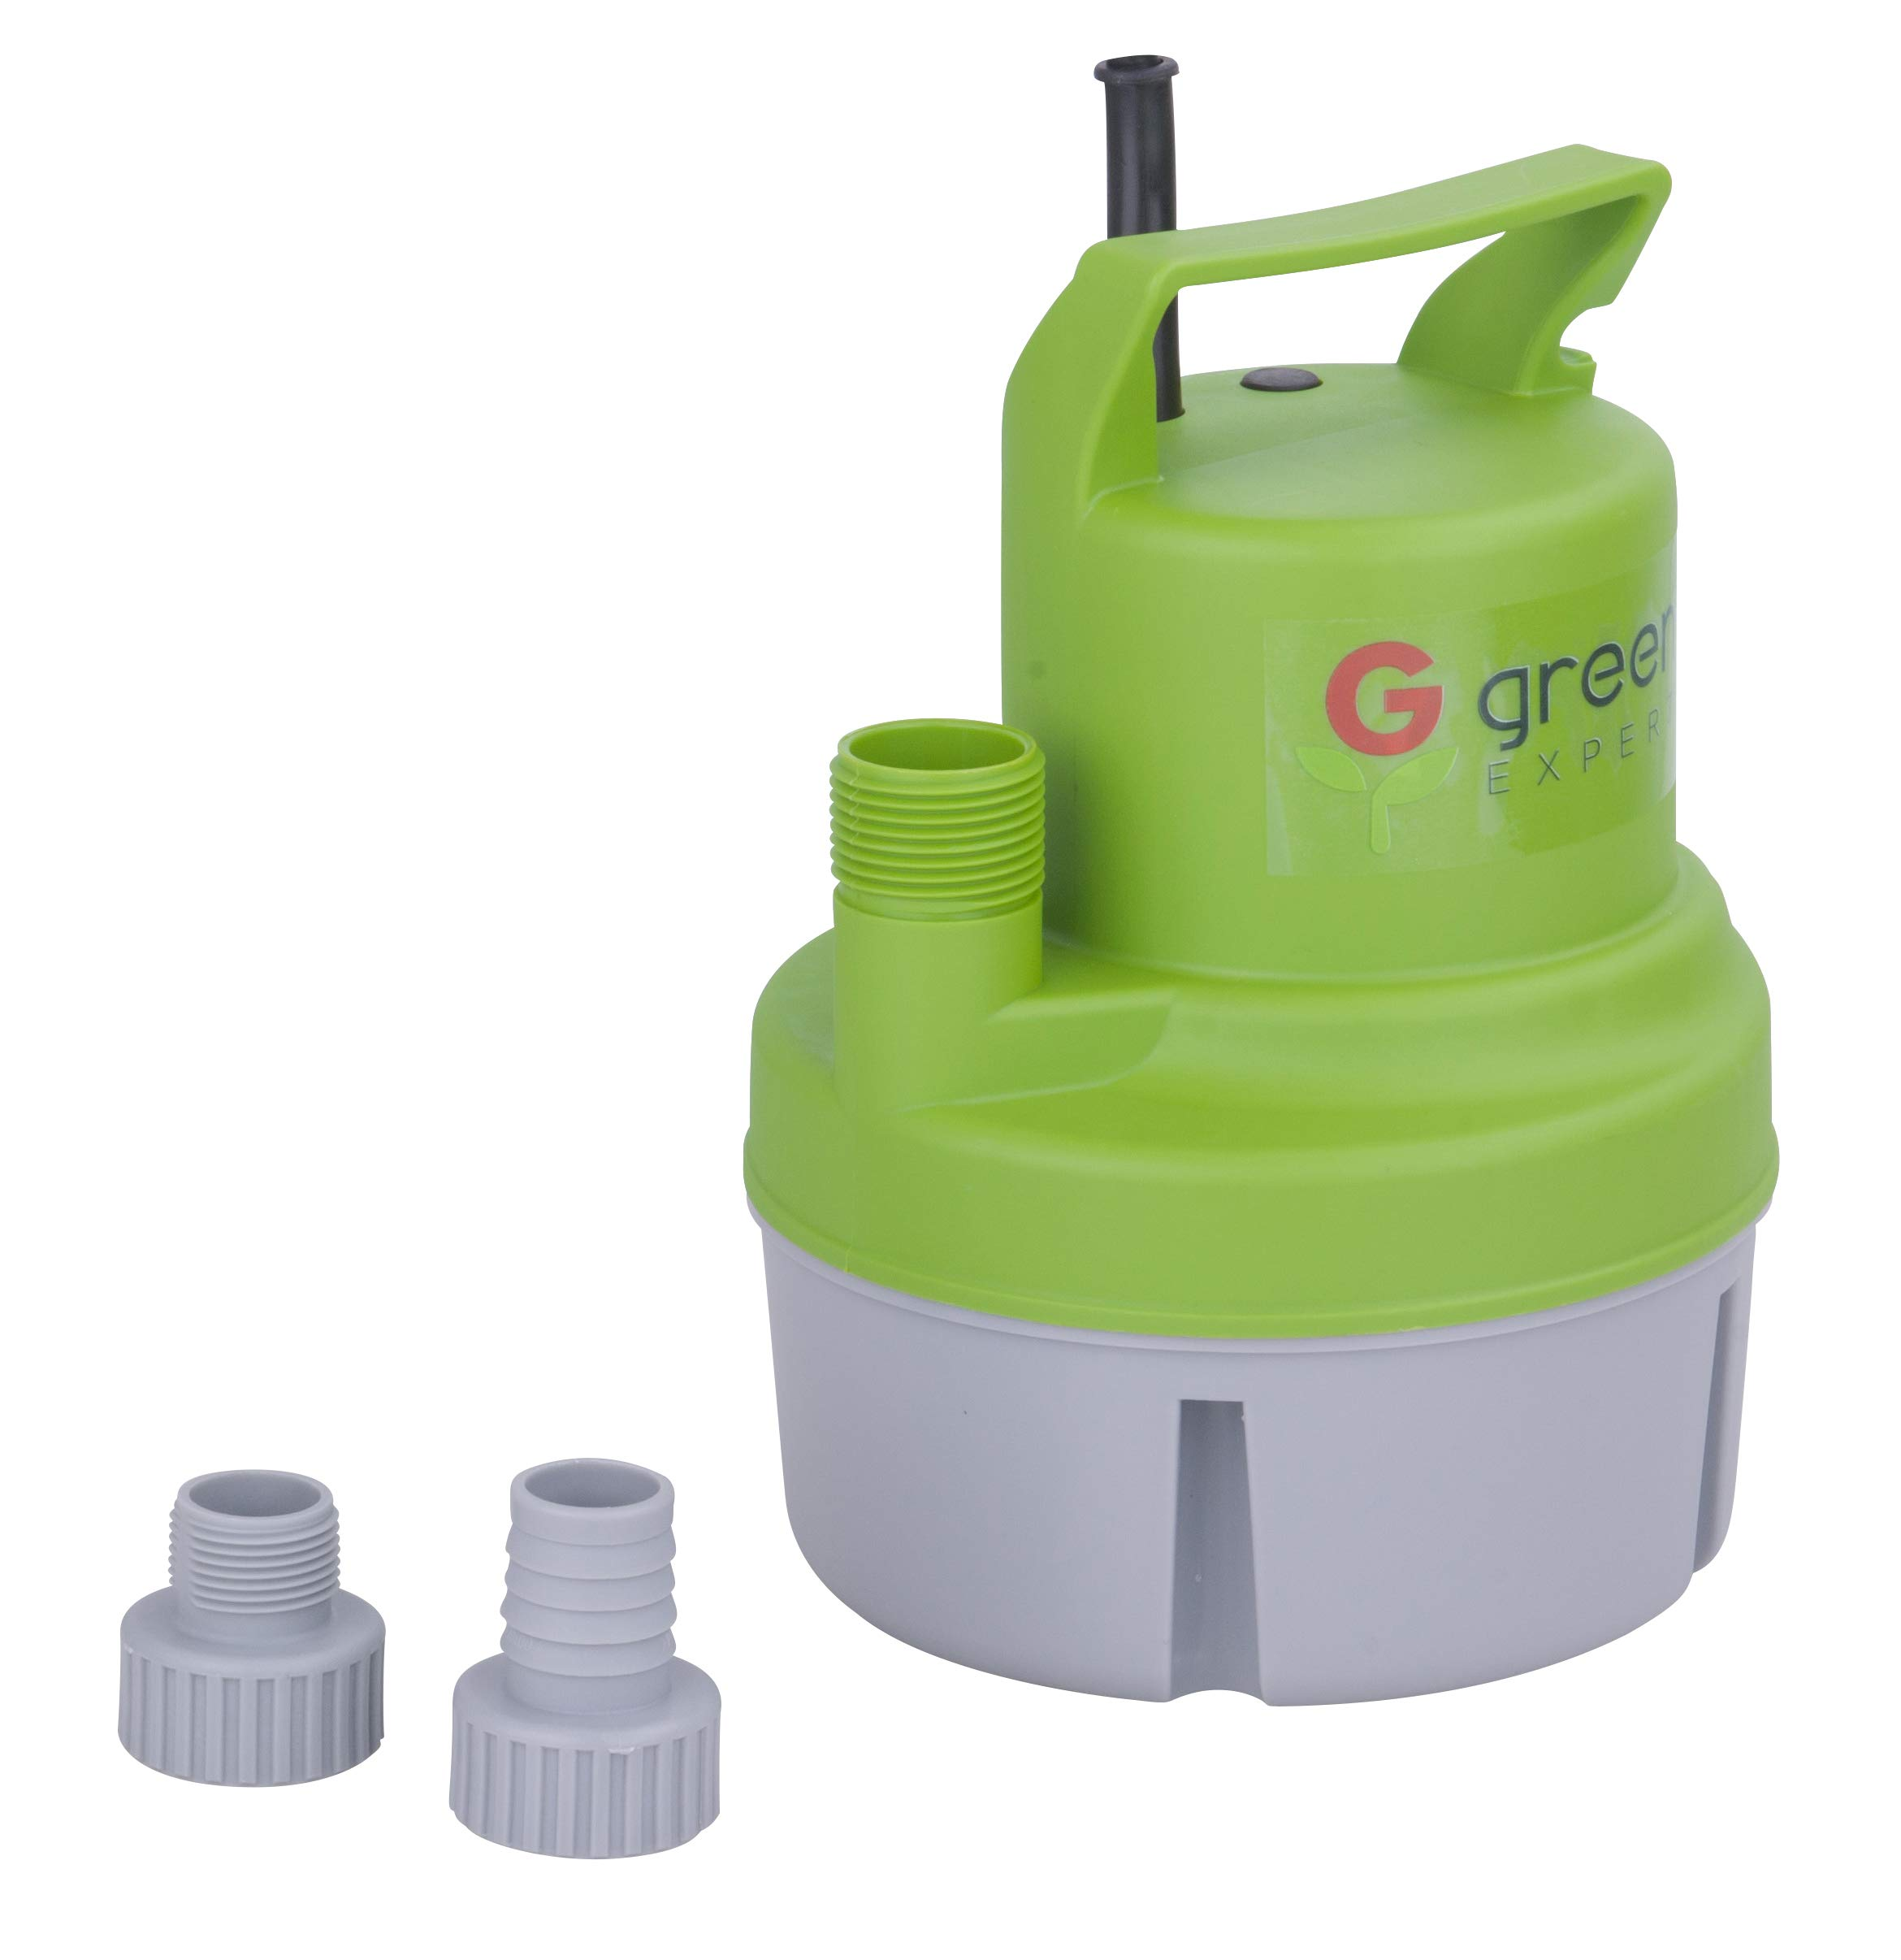 Green Expert 203617 1/6 HP Portable Submersible Utility Pump with 1056 GPH Flow Efficiently for Water Removal Basement Flood Drainage Pump with 3/4'' Adaptor Available for Standard Garden hose by G green EXPERT (Image #2)